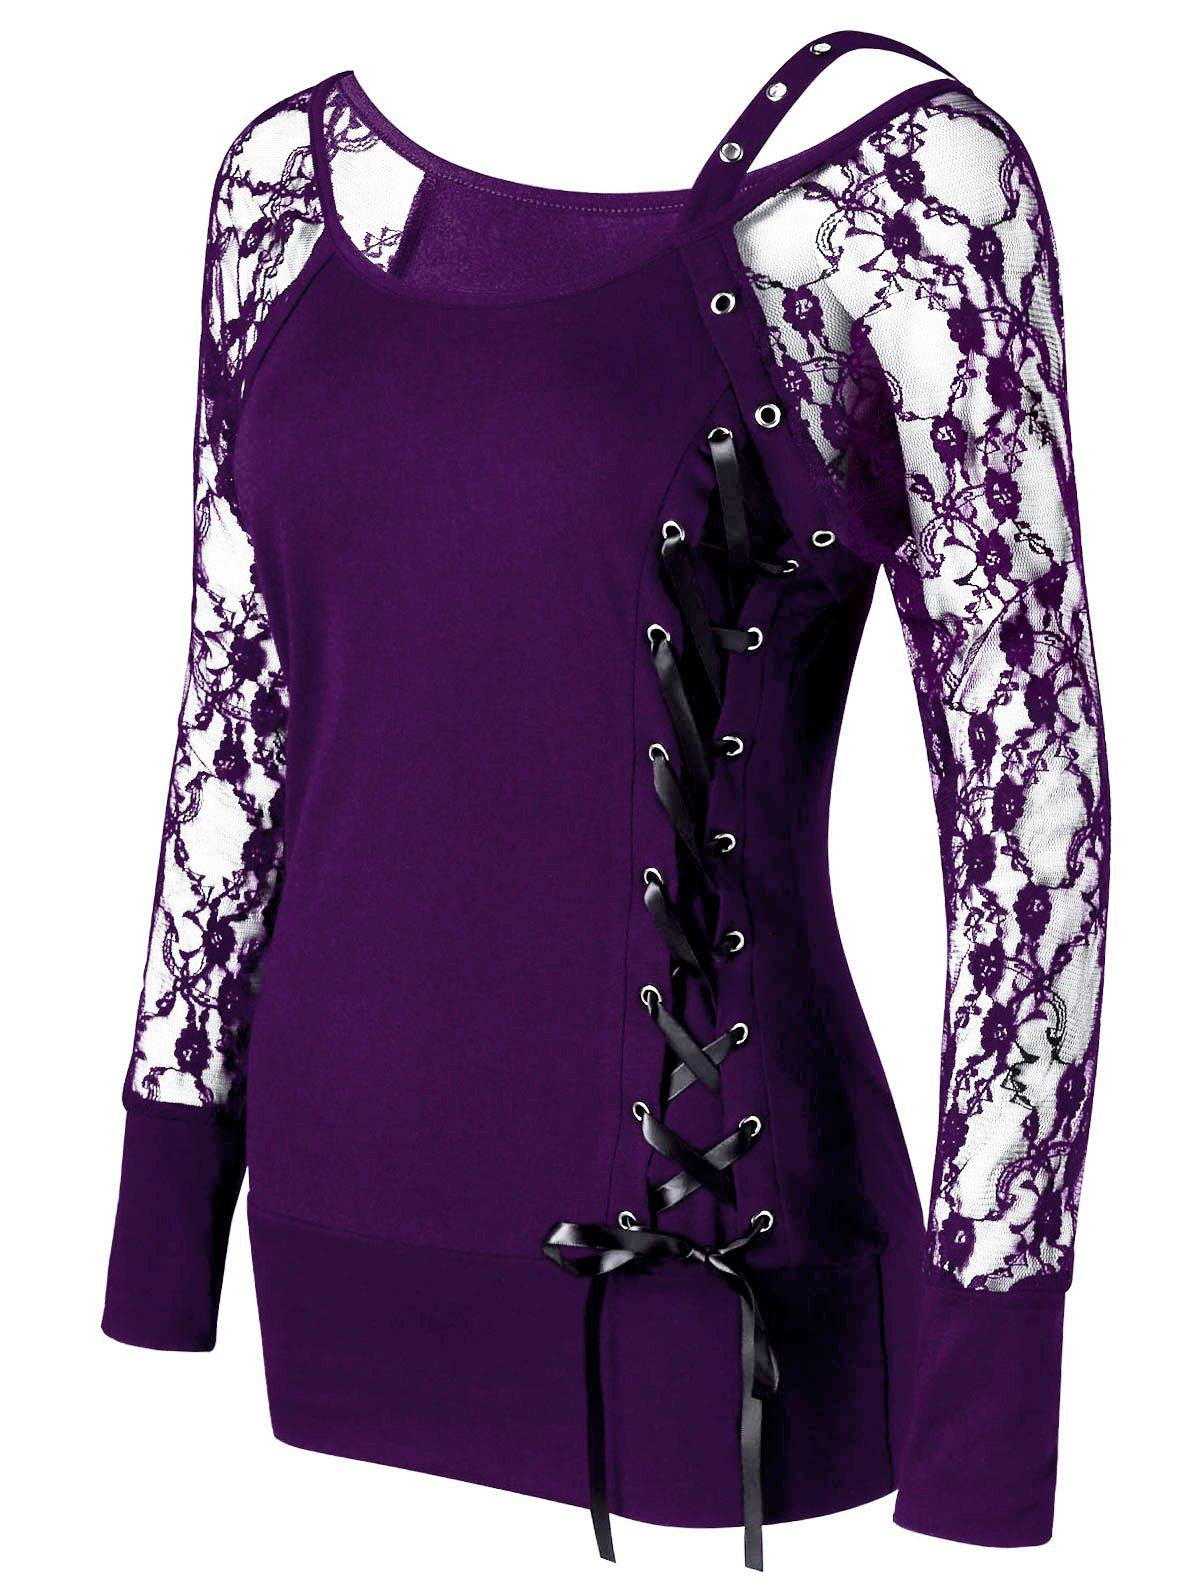 Raglan Sleeve Fitted Lace Up TopWOMEN<br><br>Size: L; Color: PURPLE; Material: Polyester,Spandex; Shirt Length: Regular; Sleeve Length: Full; Collar: Scoop Neck; Style: Fashion; Embellishment: Lace; Pattern Type: Solid; Season: Fall,Spring,Summer; Weight: 0.2400kg; Package Contents: 1 x Top;